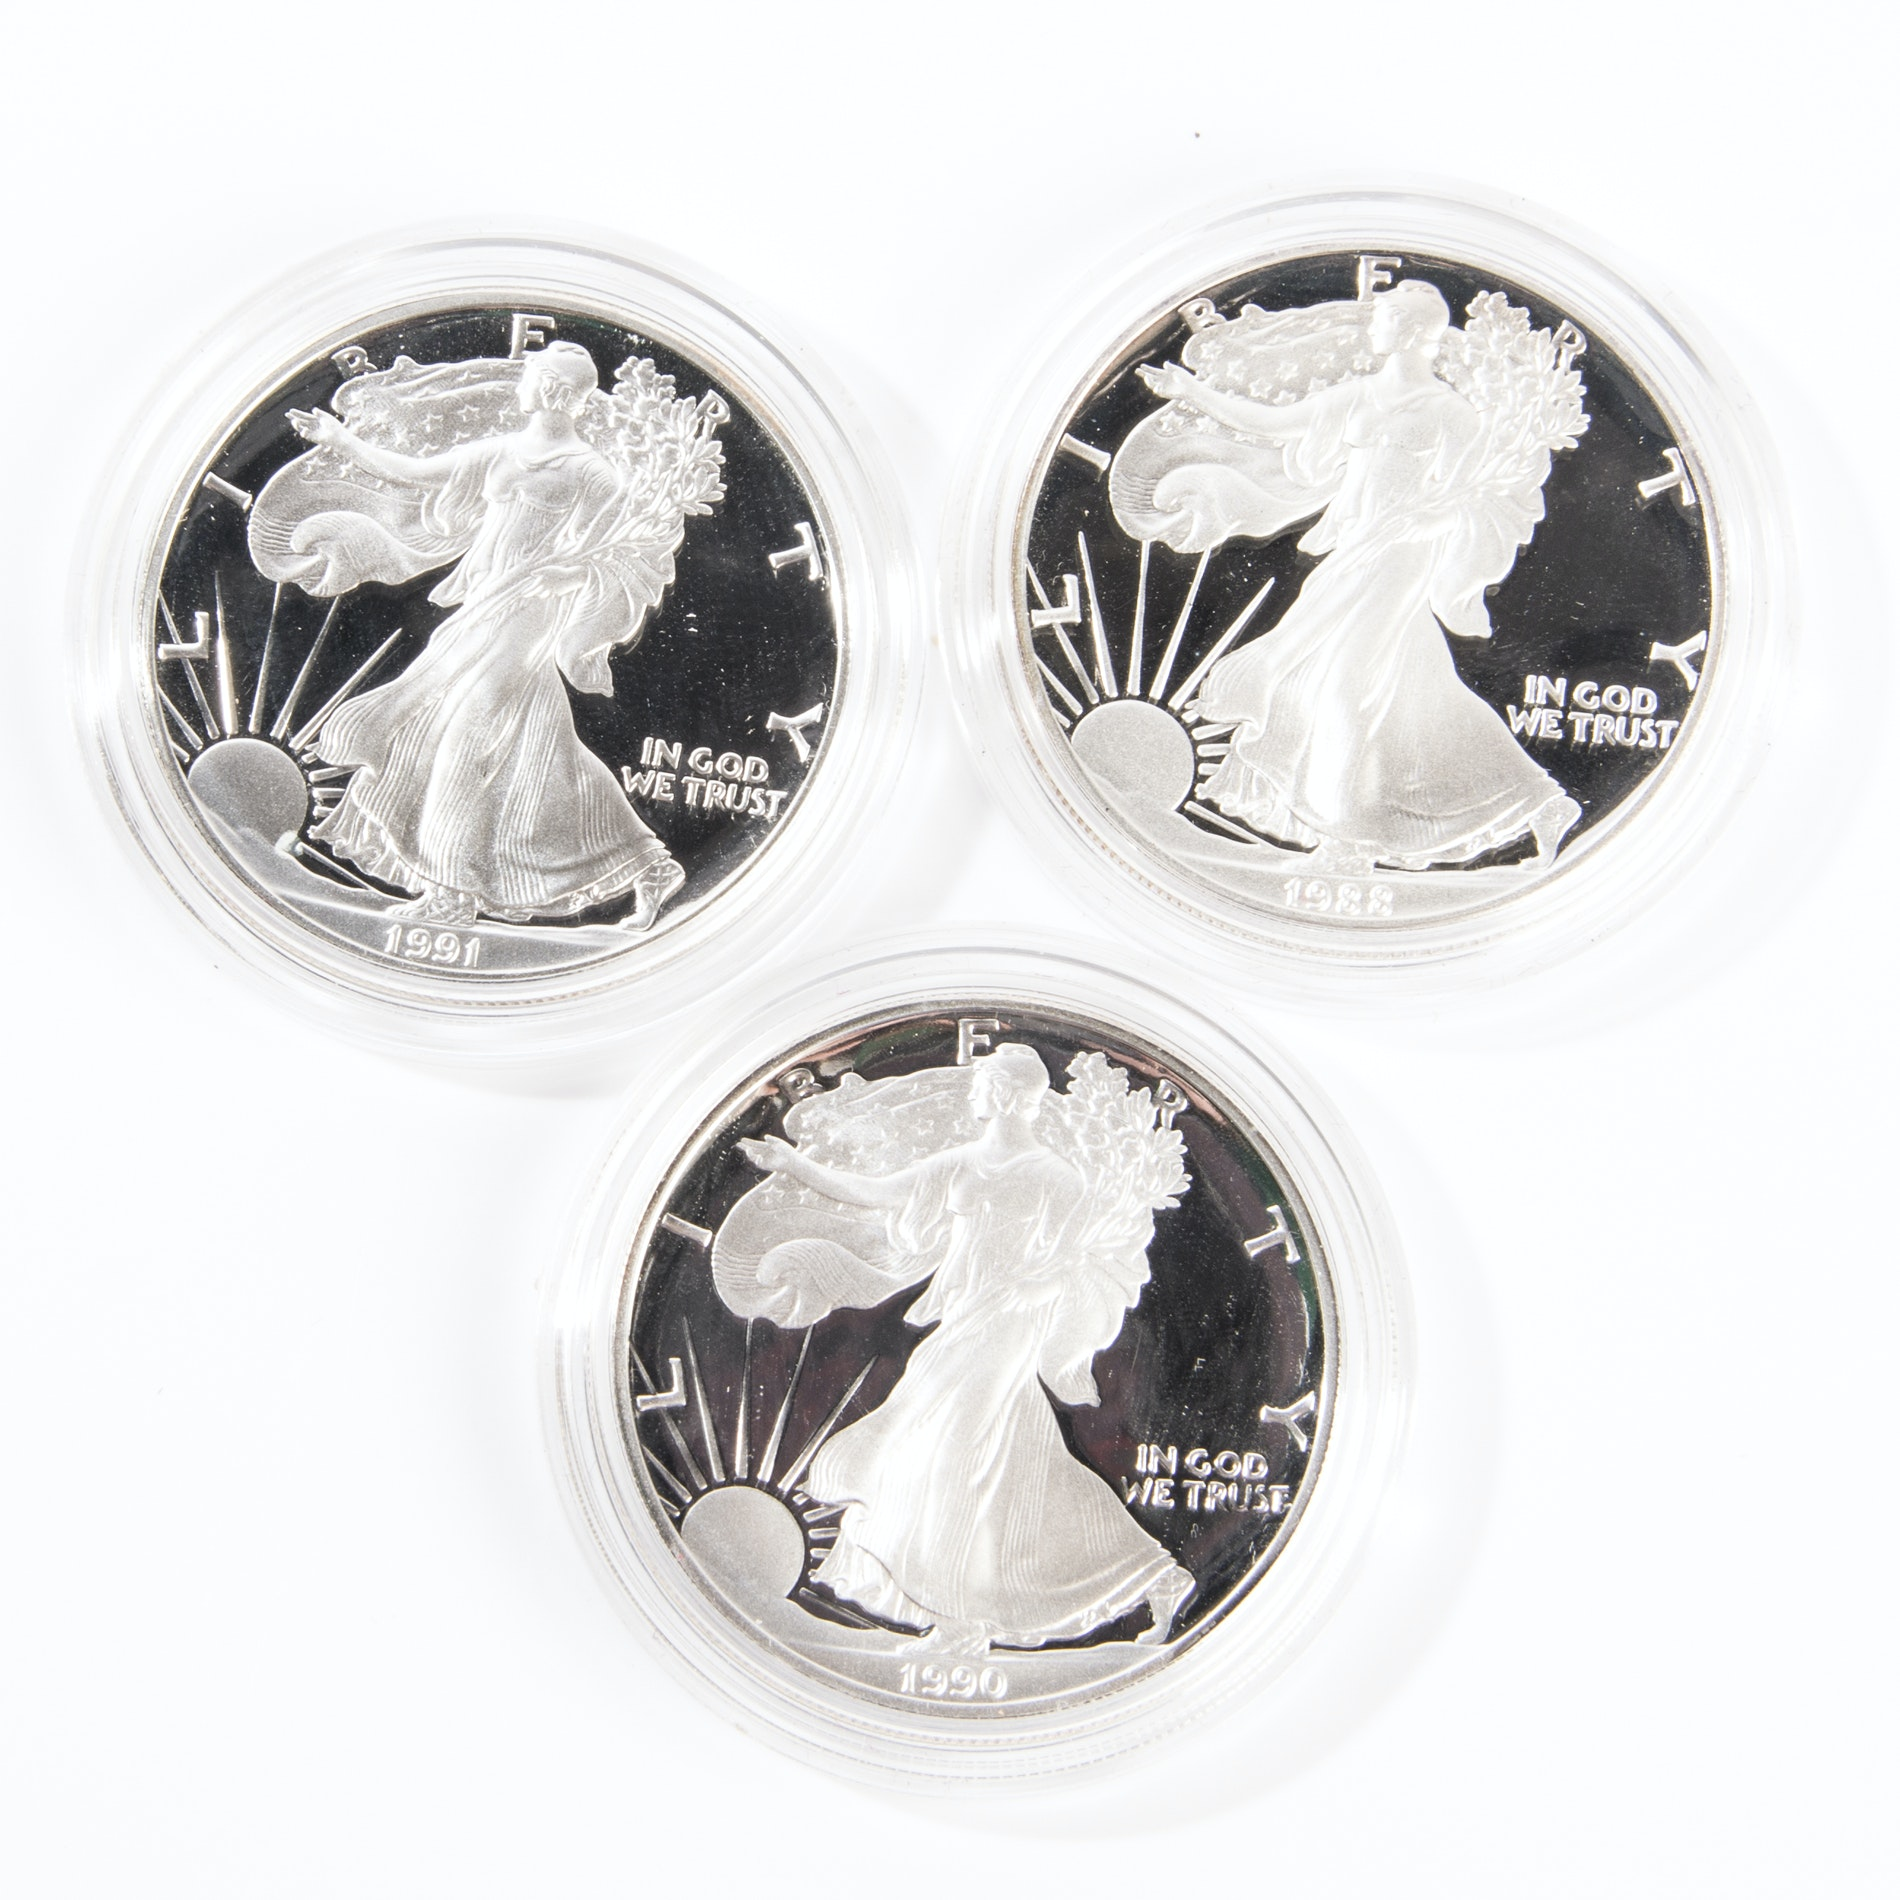 1988, 1990 and 1991 United States Silver Eagle Dollars